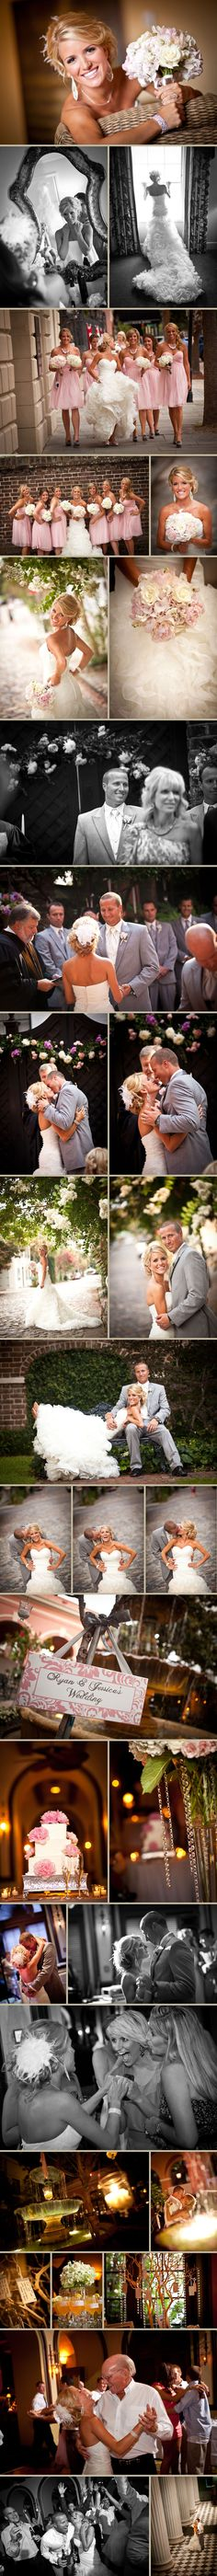 Wedding picture ideas.